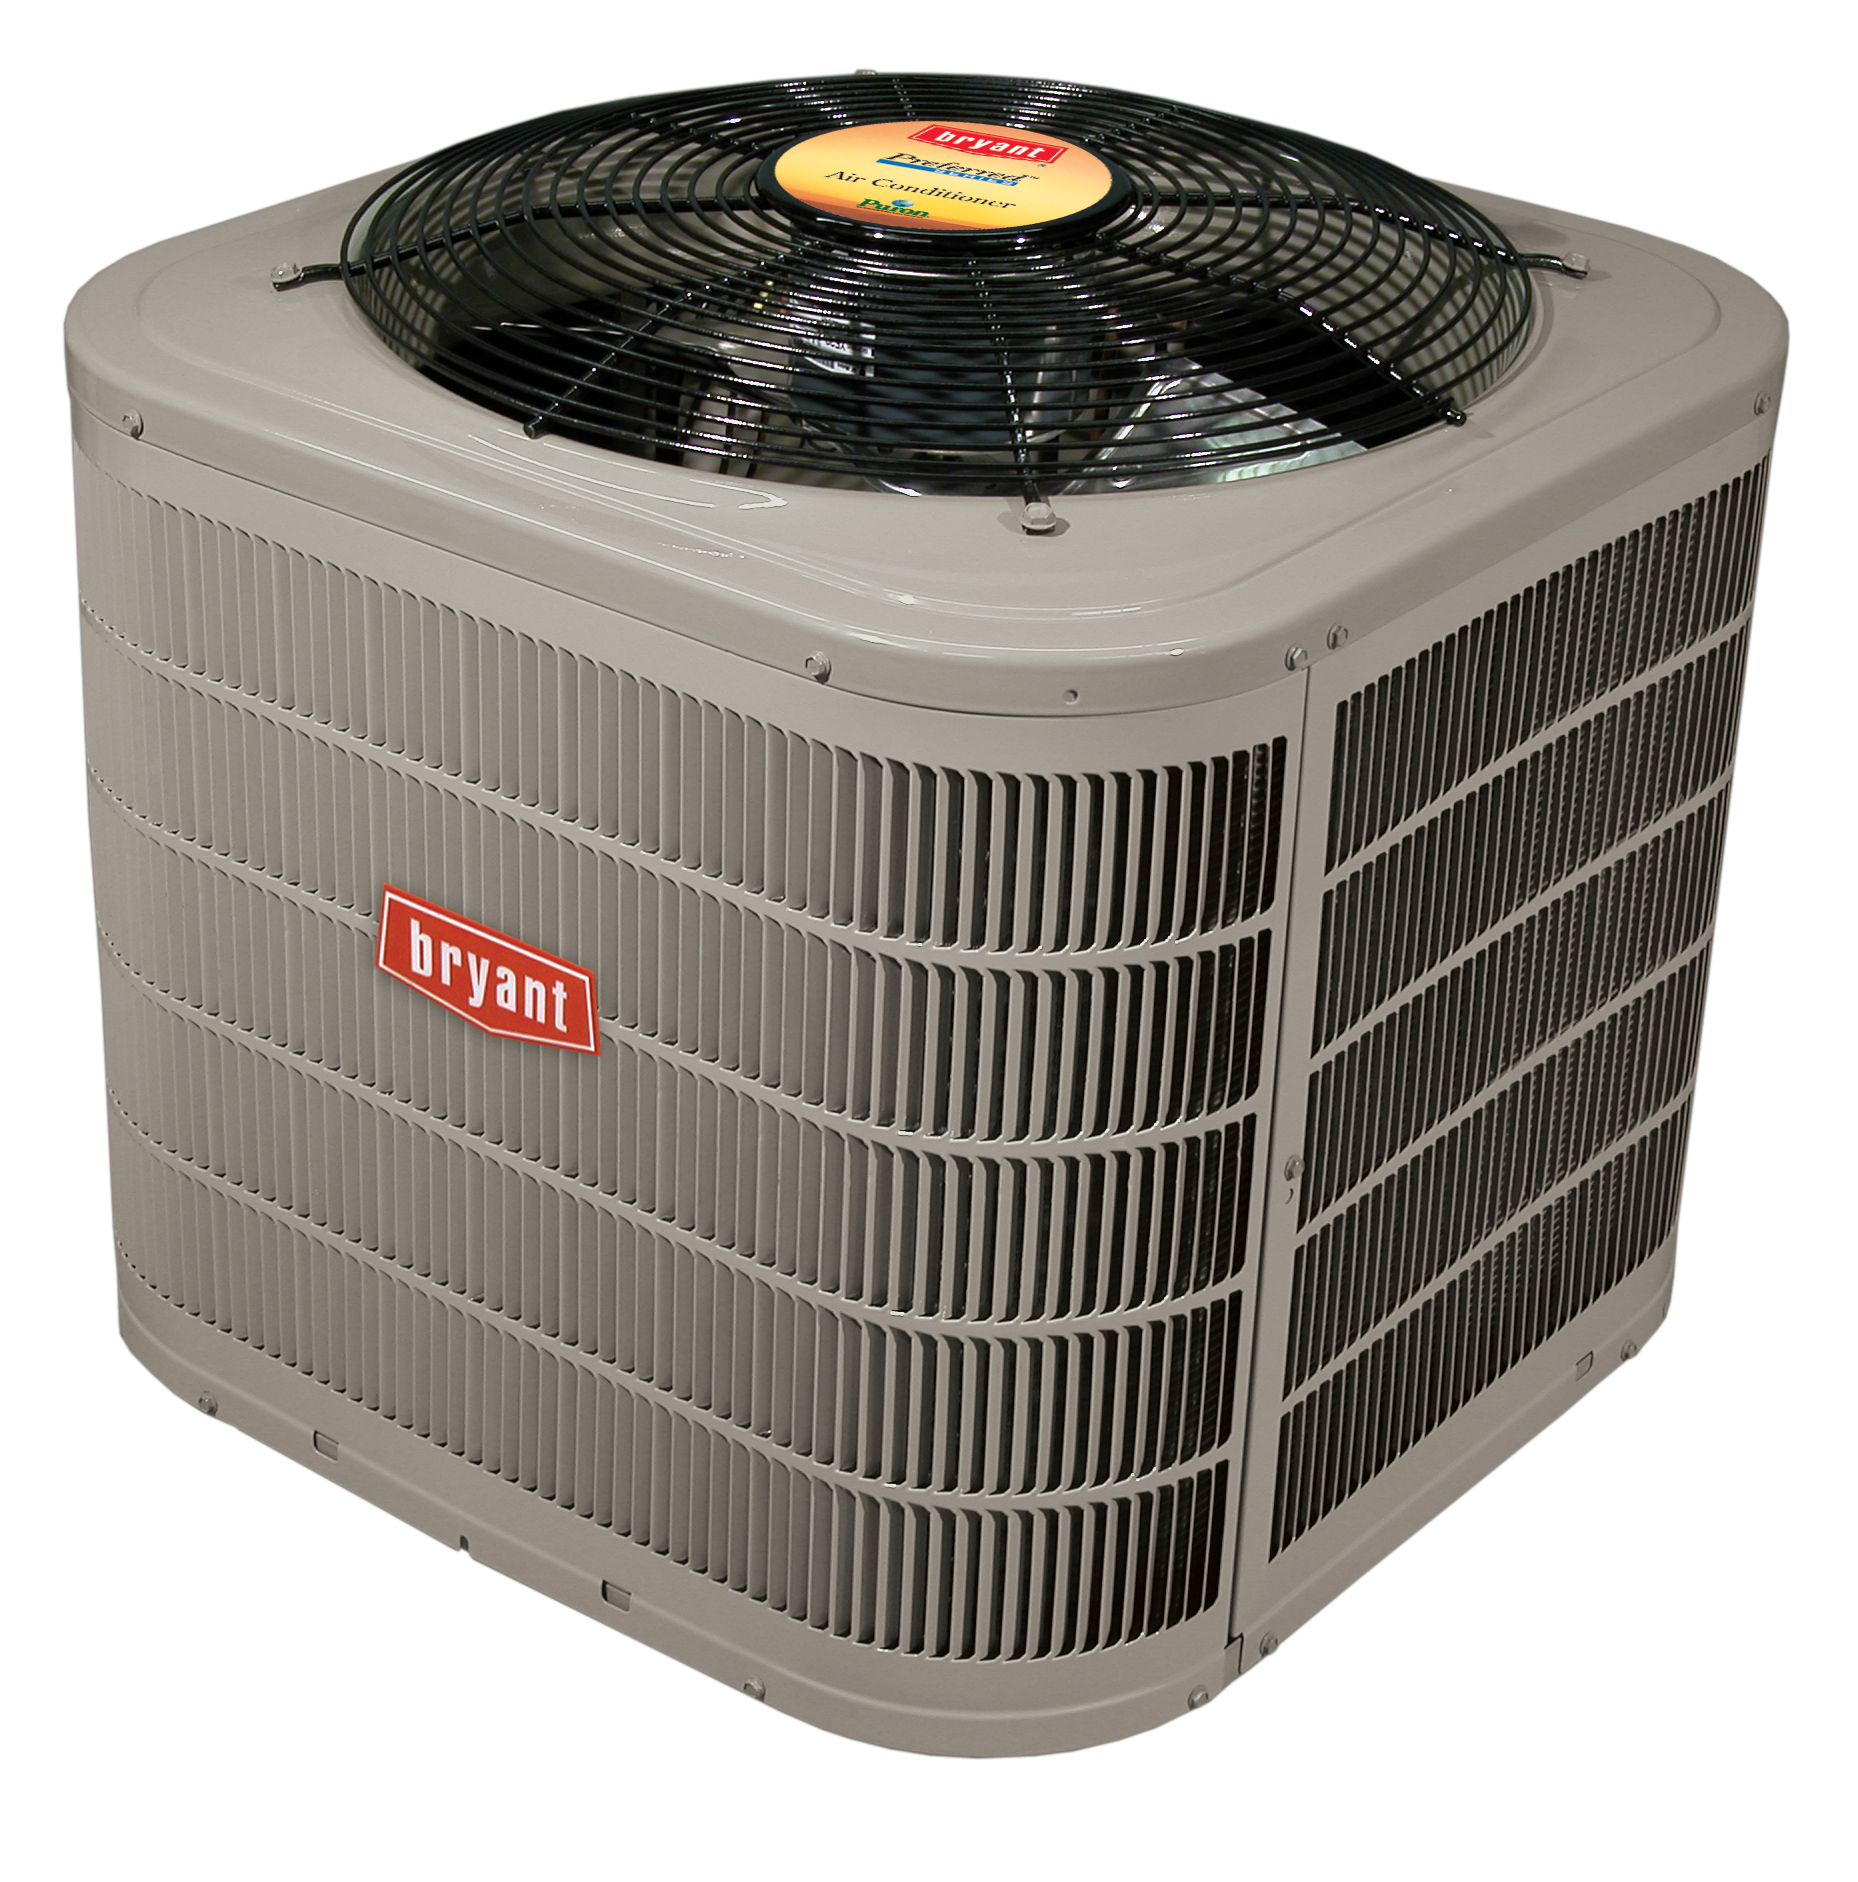 Air Conditioning Central Air Conditioner Systems Cincinnati Dayton #AA3022